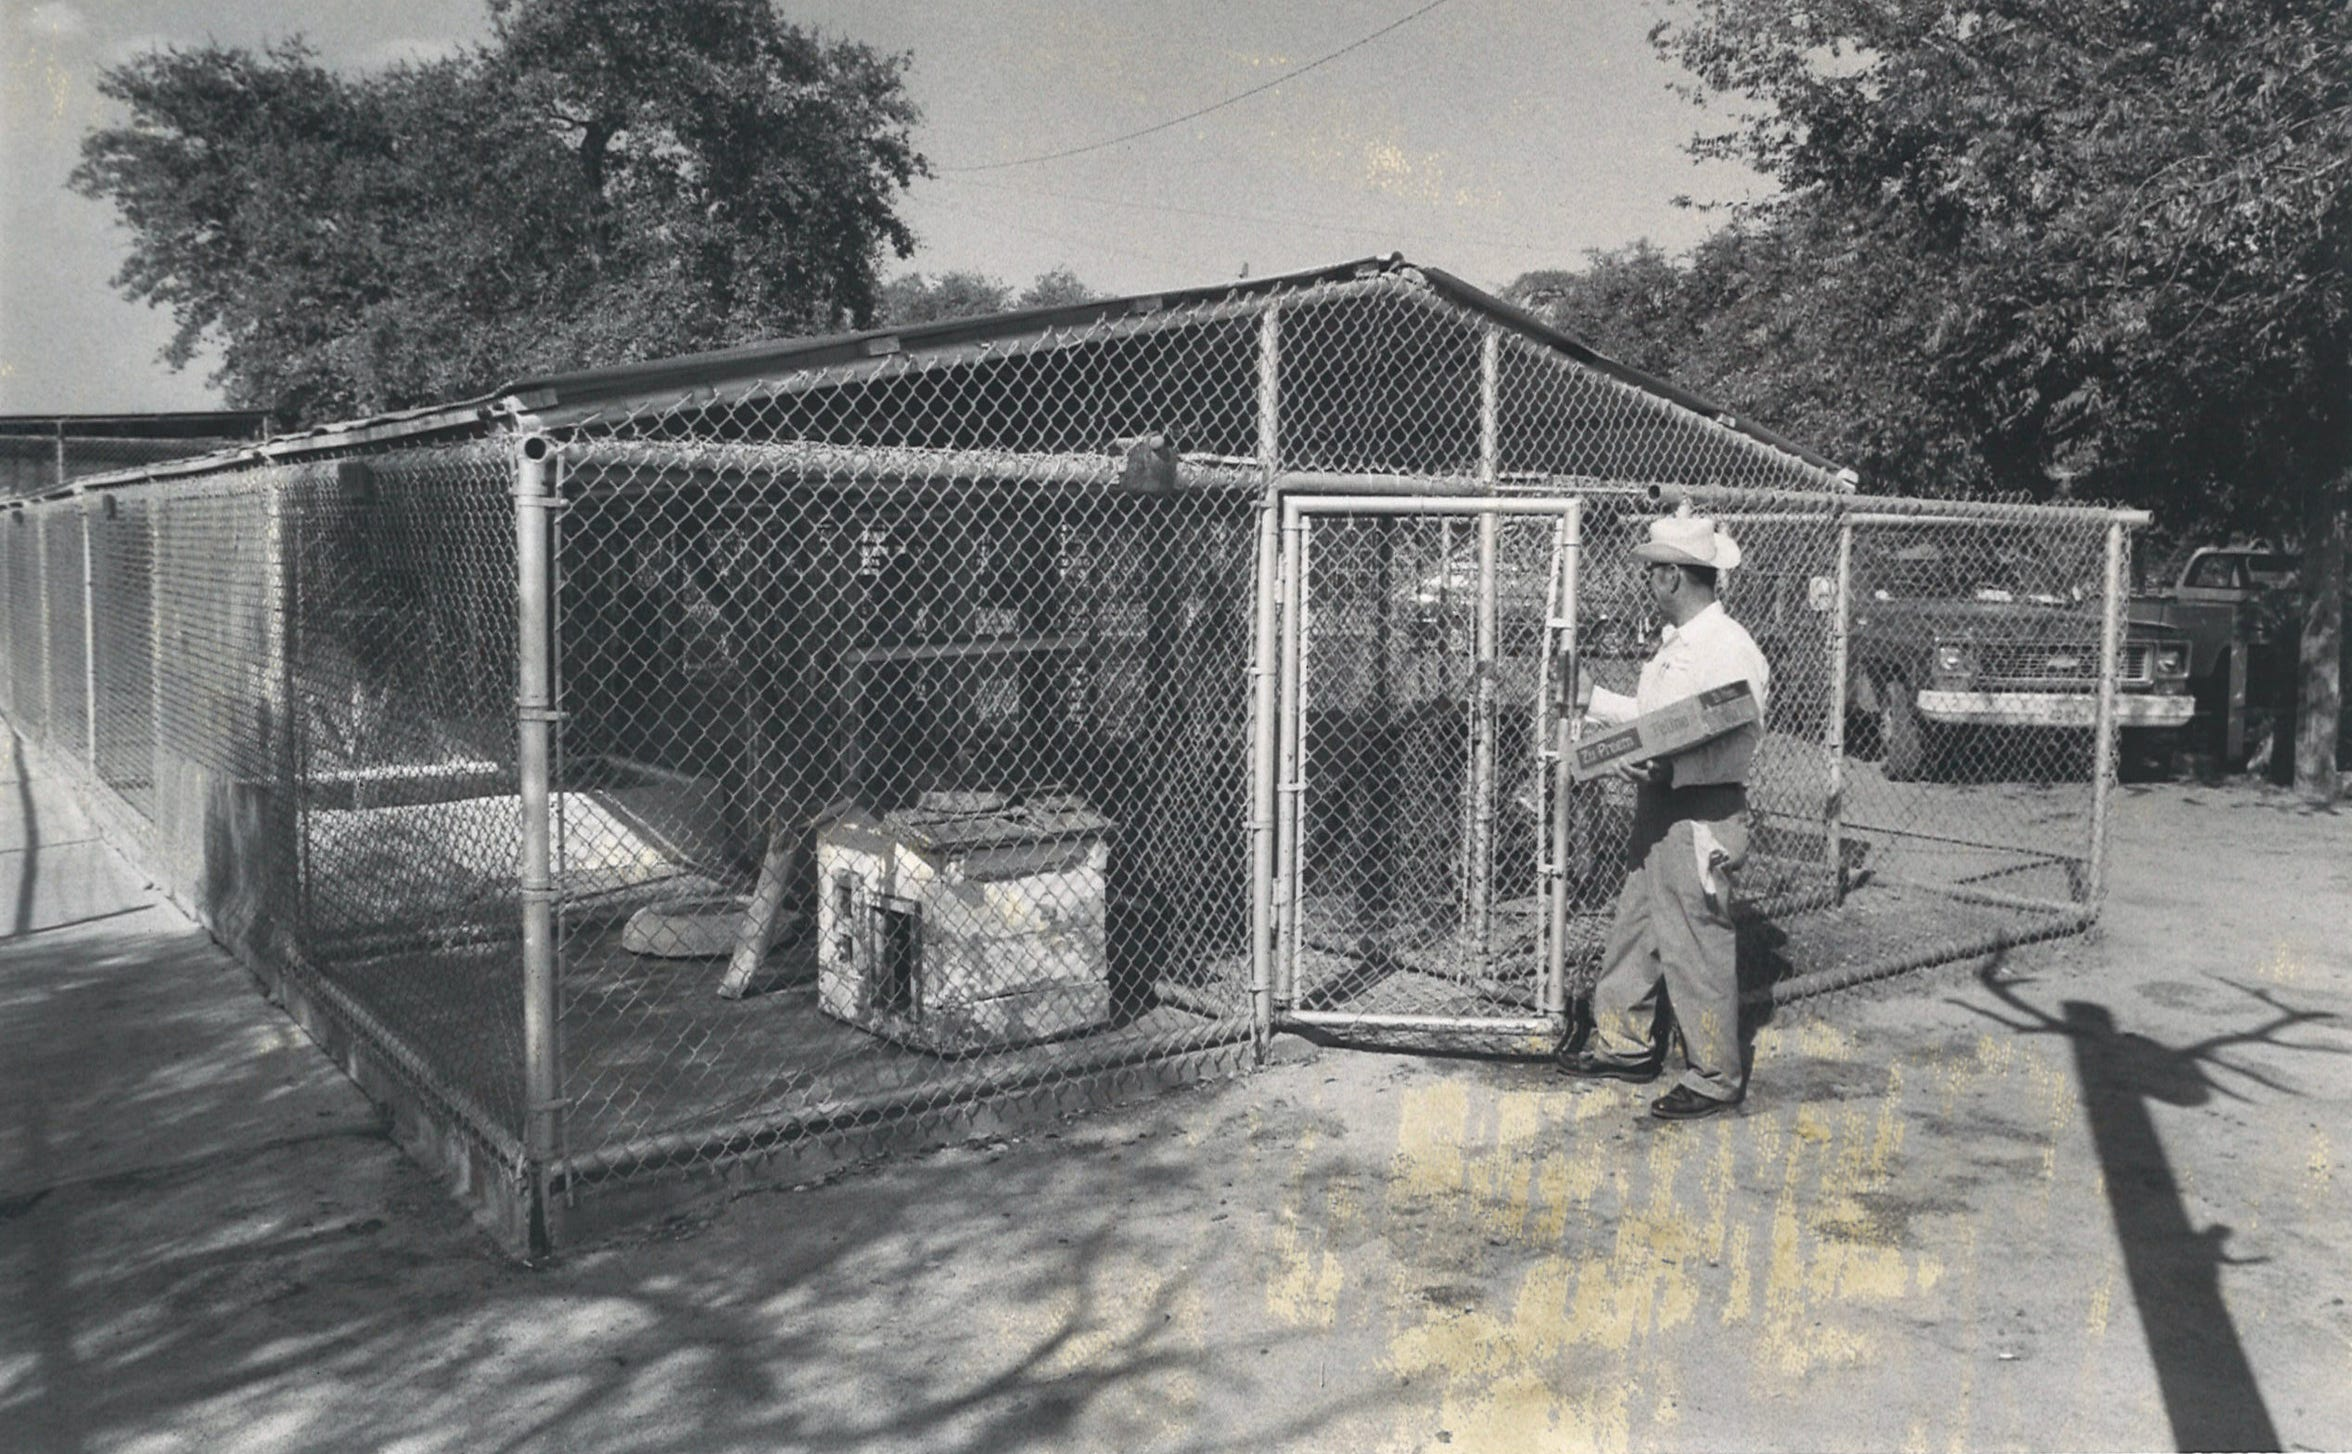 One of the enclosures at the Park Welder Zoo in Sinton in 1978.